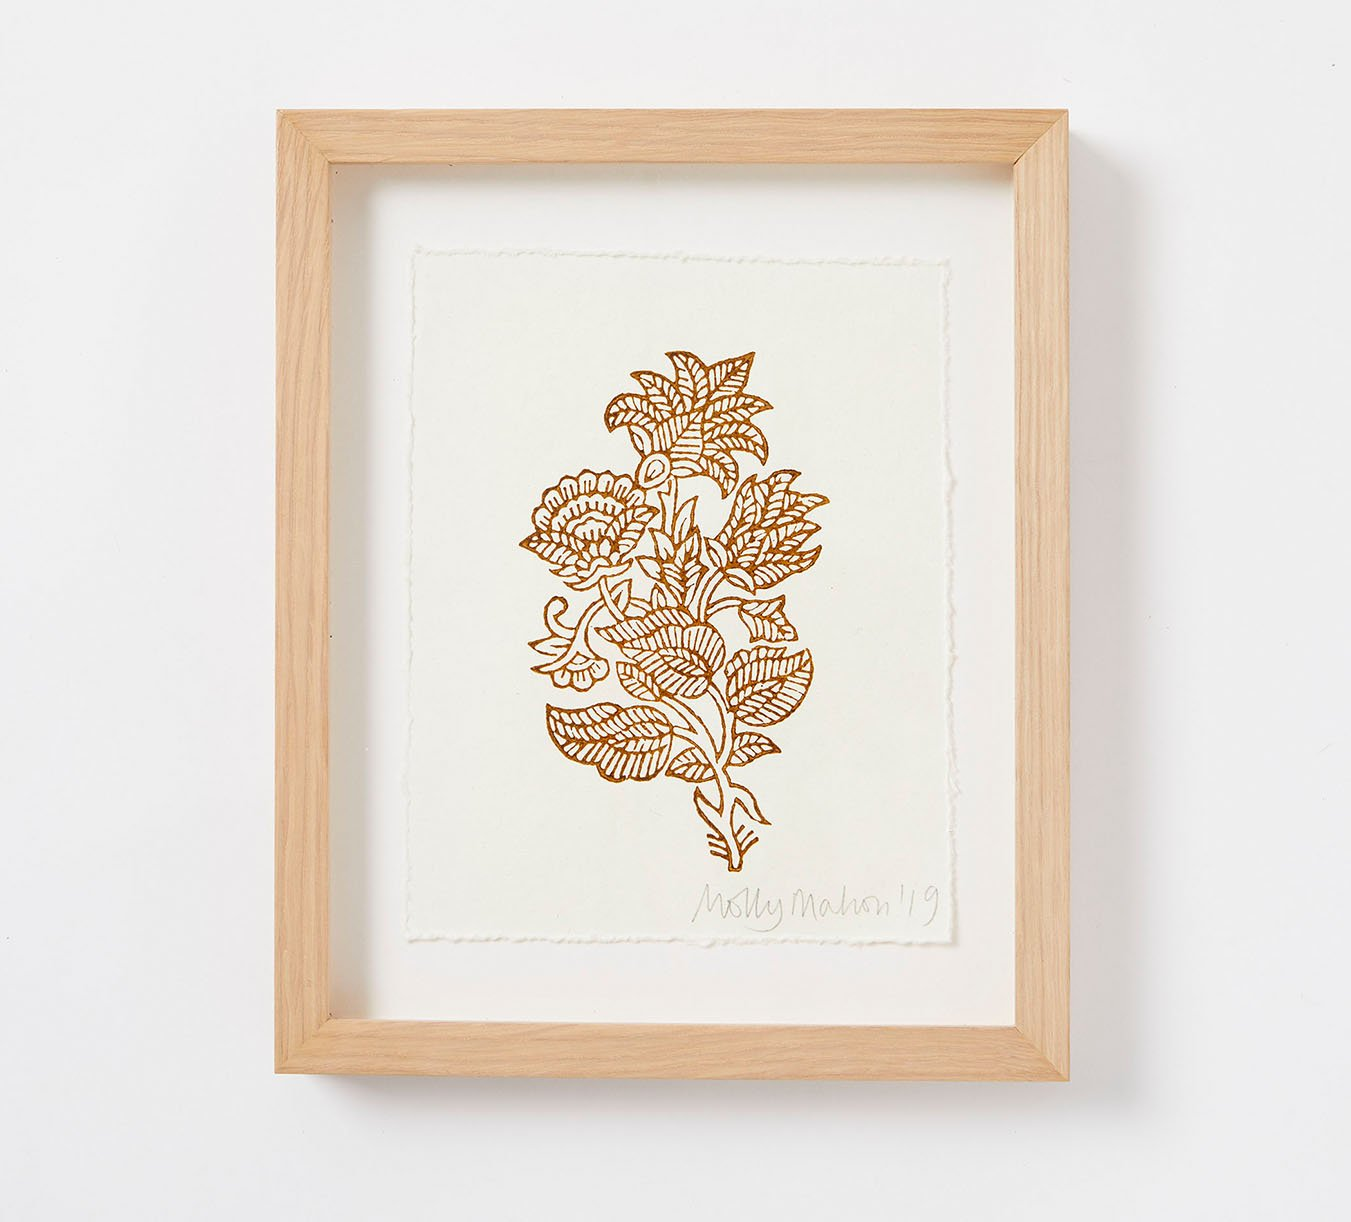 Framed - Cotton Paper Print - India - Brown